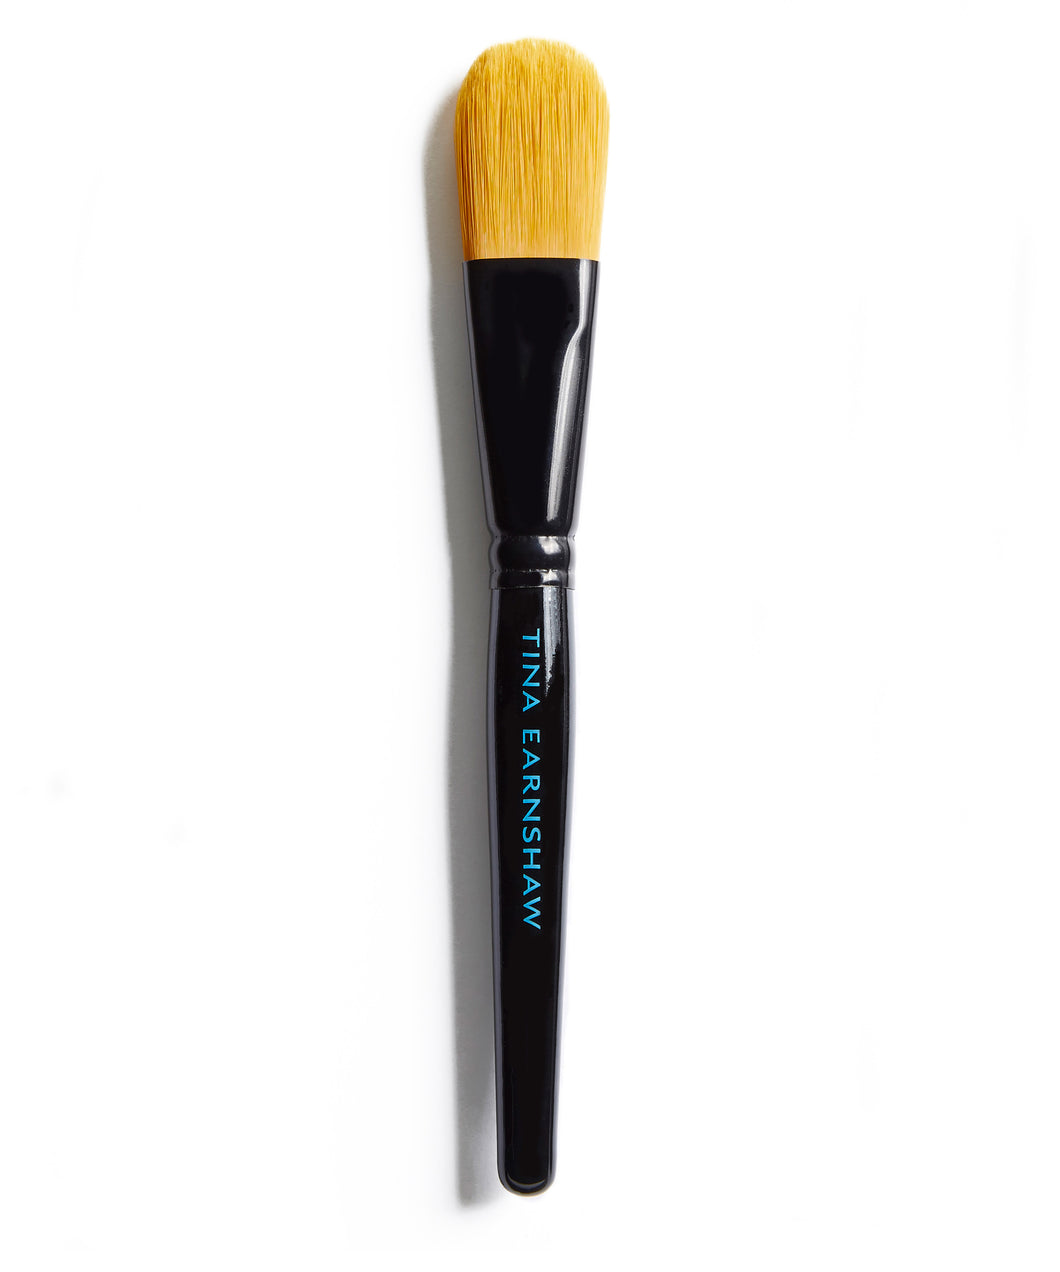 Large Foundation Brush - No11